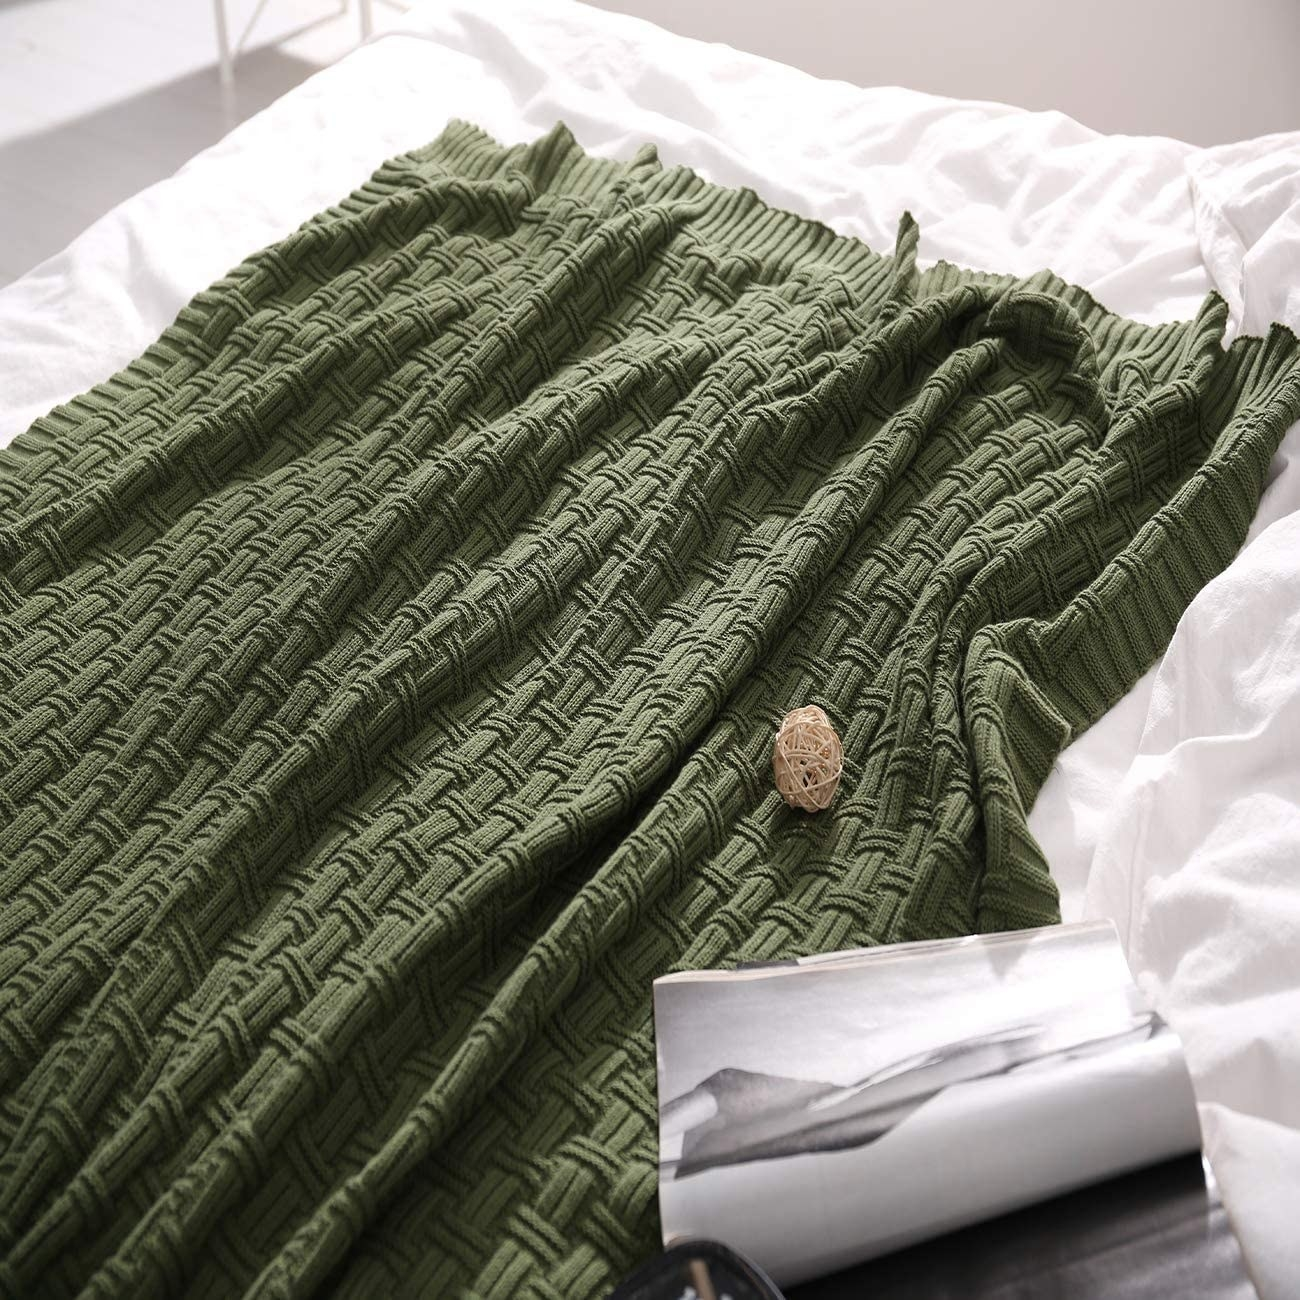 Knit pattern throw on unmade bed